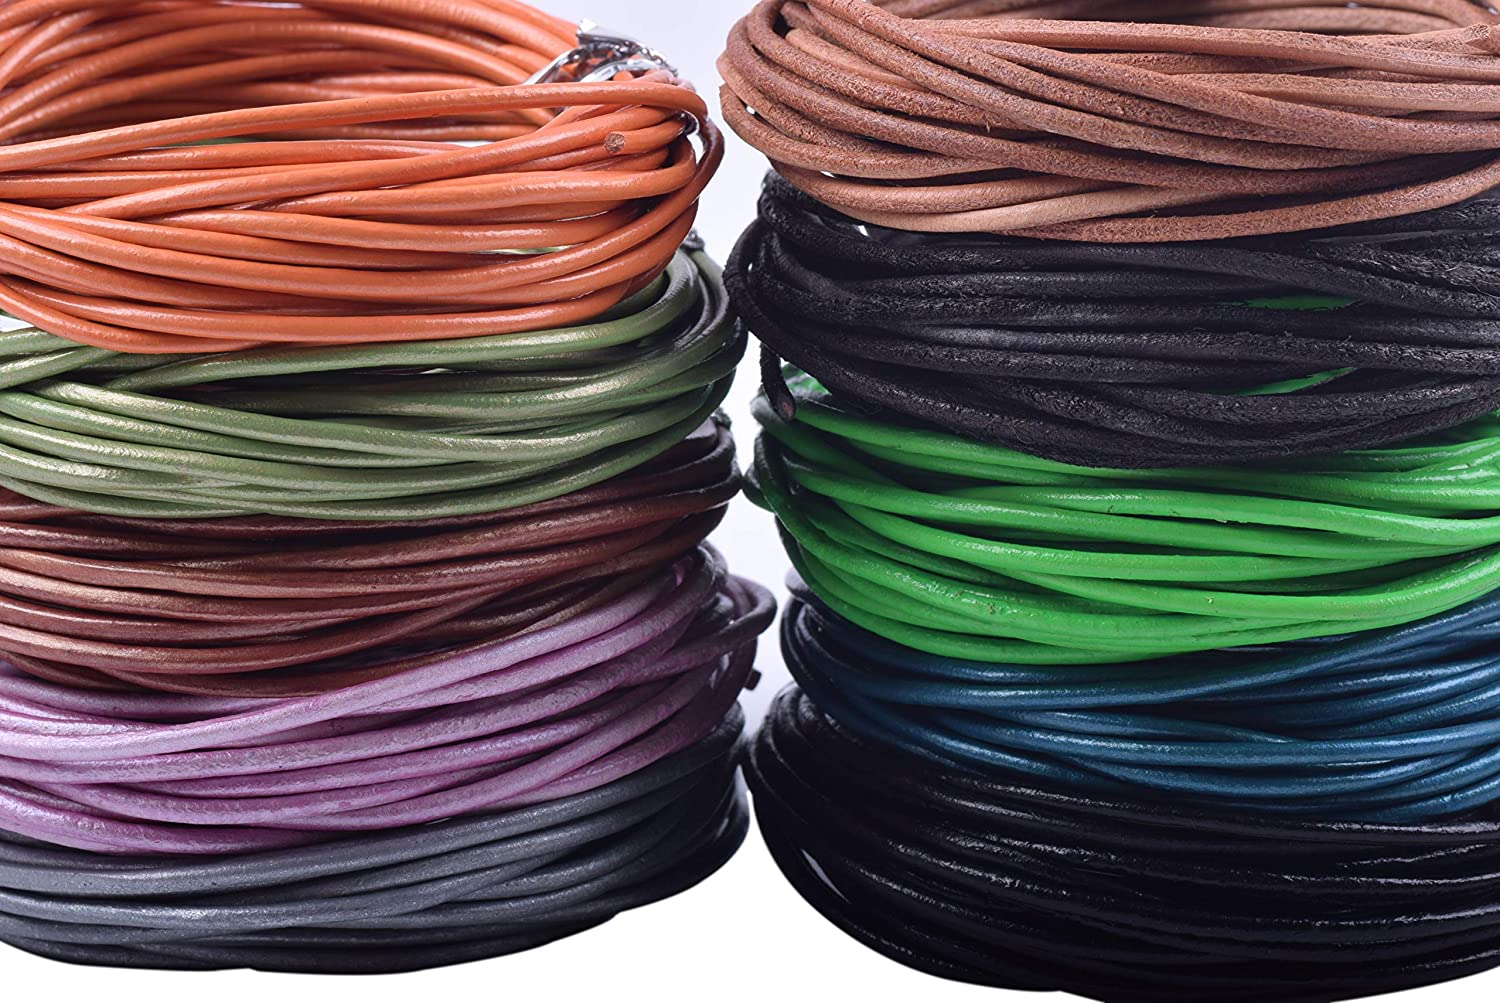 Necklaces Plain Genuine Leather Cord 1.0MM A1 Black cords craft Round Leather Cord for Round Bracelet